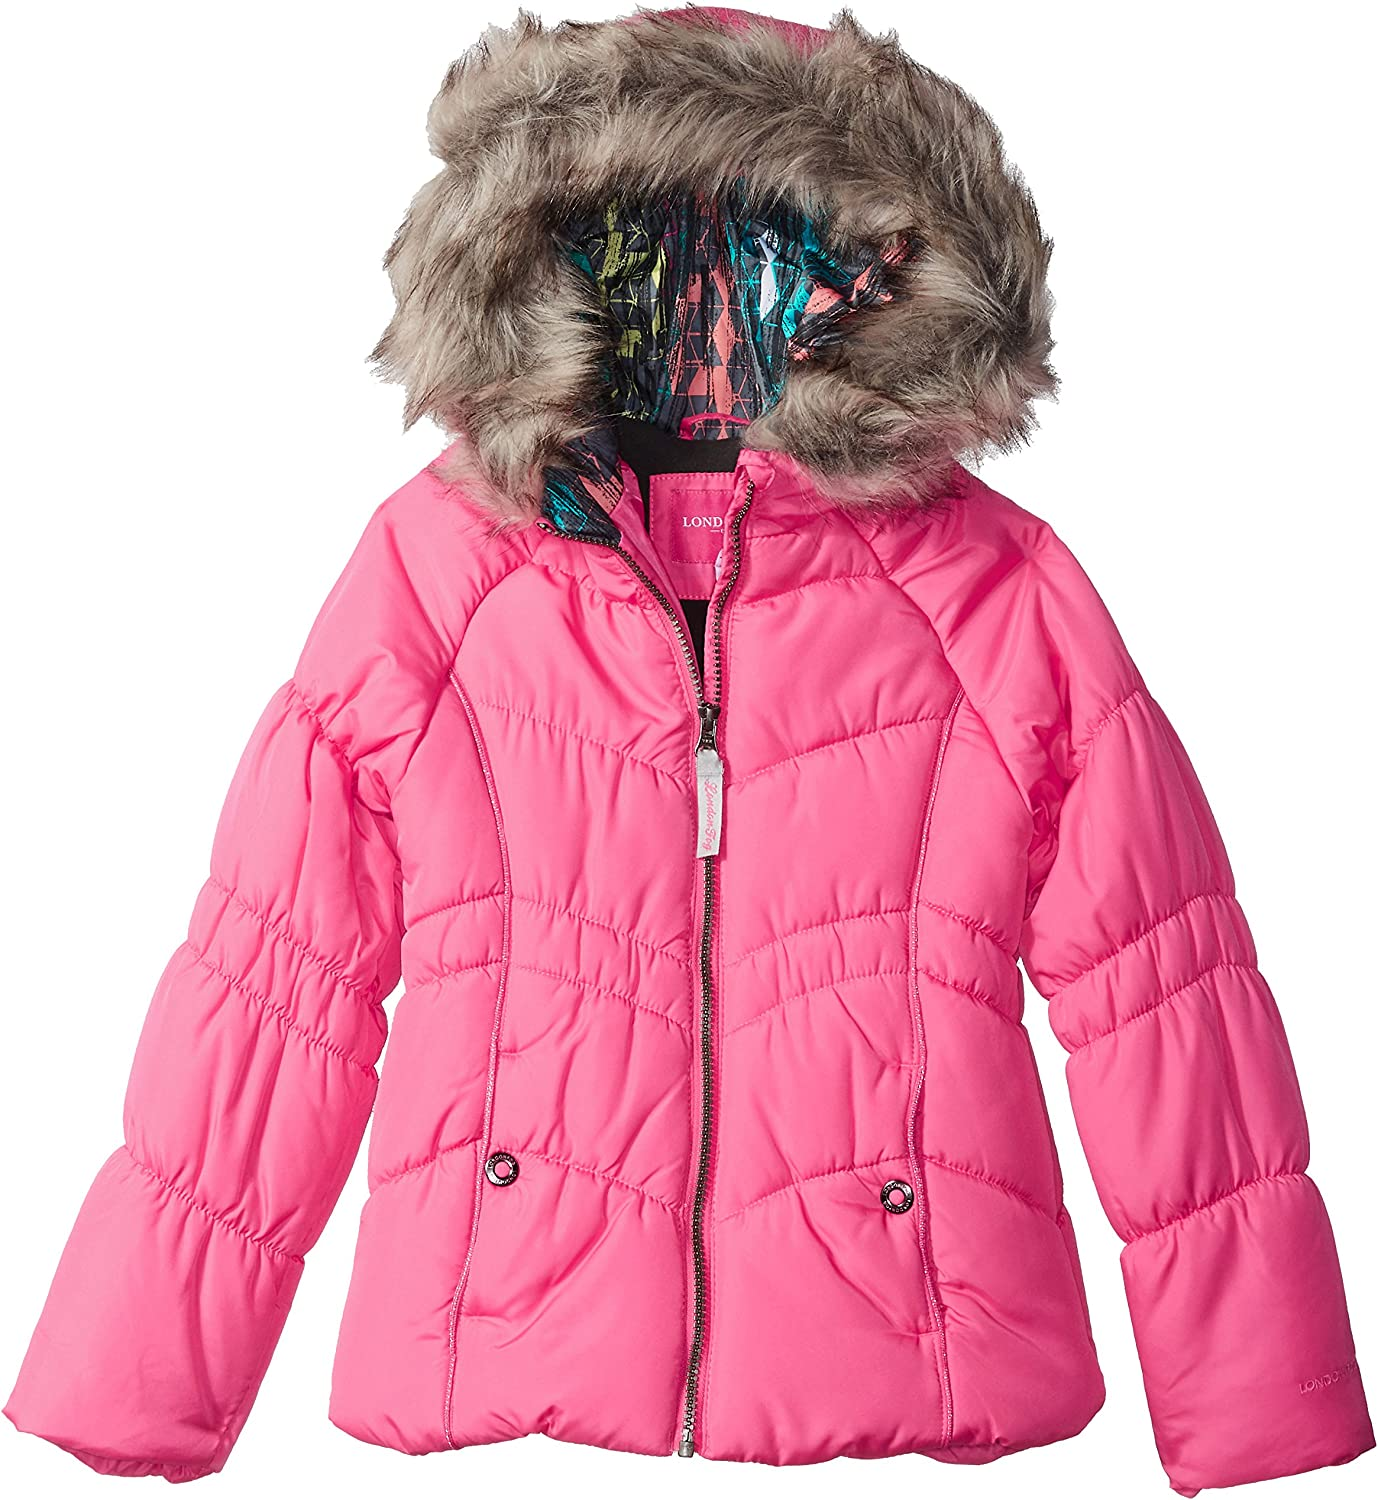 LONDON FOG Girls Puffer Jacket with Accessory